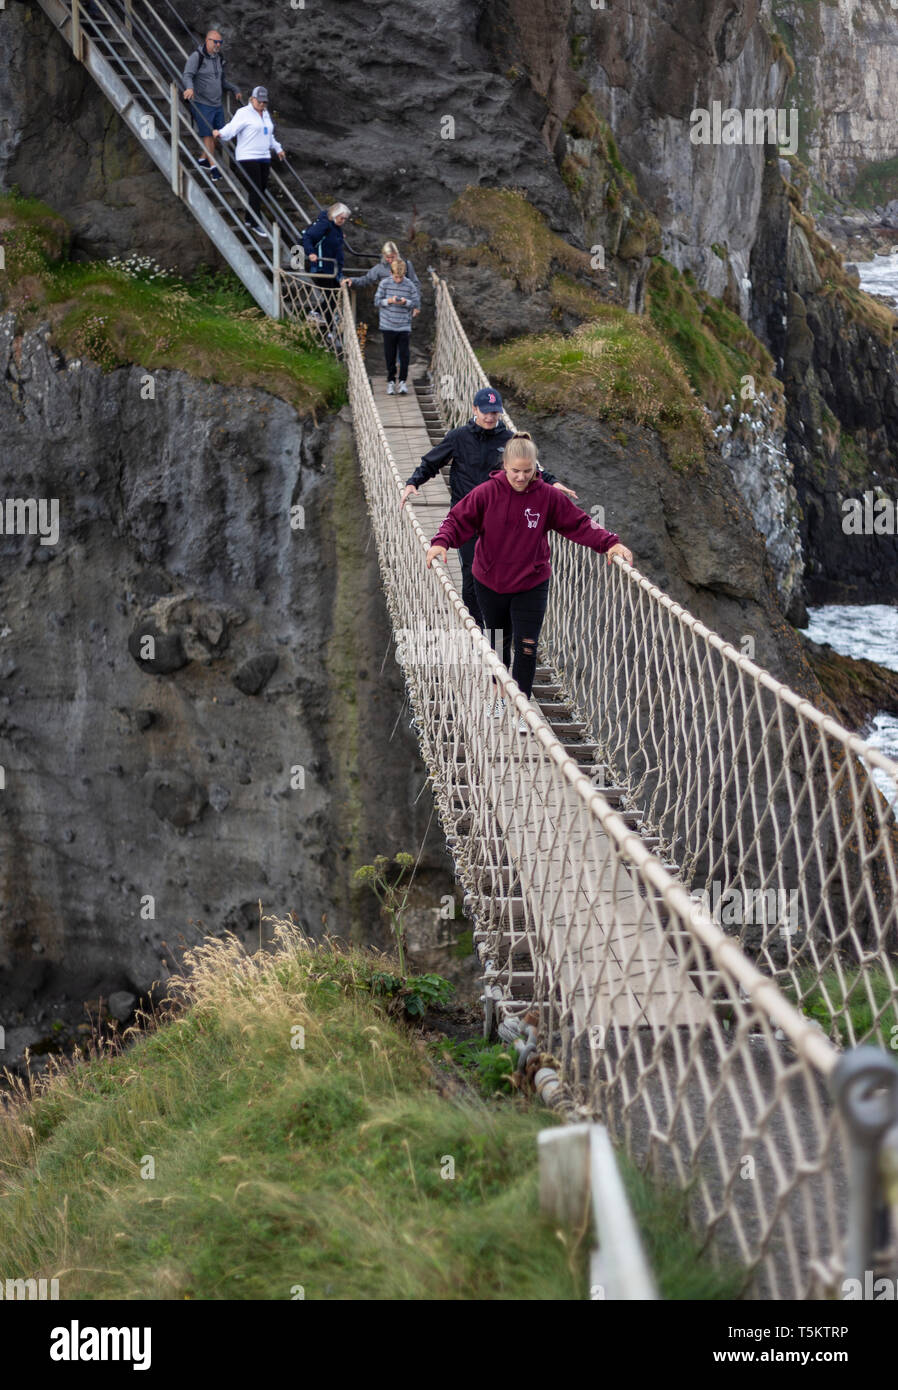 Carrick-a-Rede Rope Bridge, Northern Ireland - Stock Image